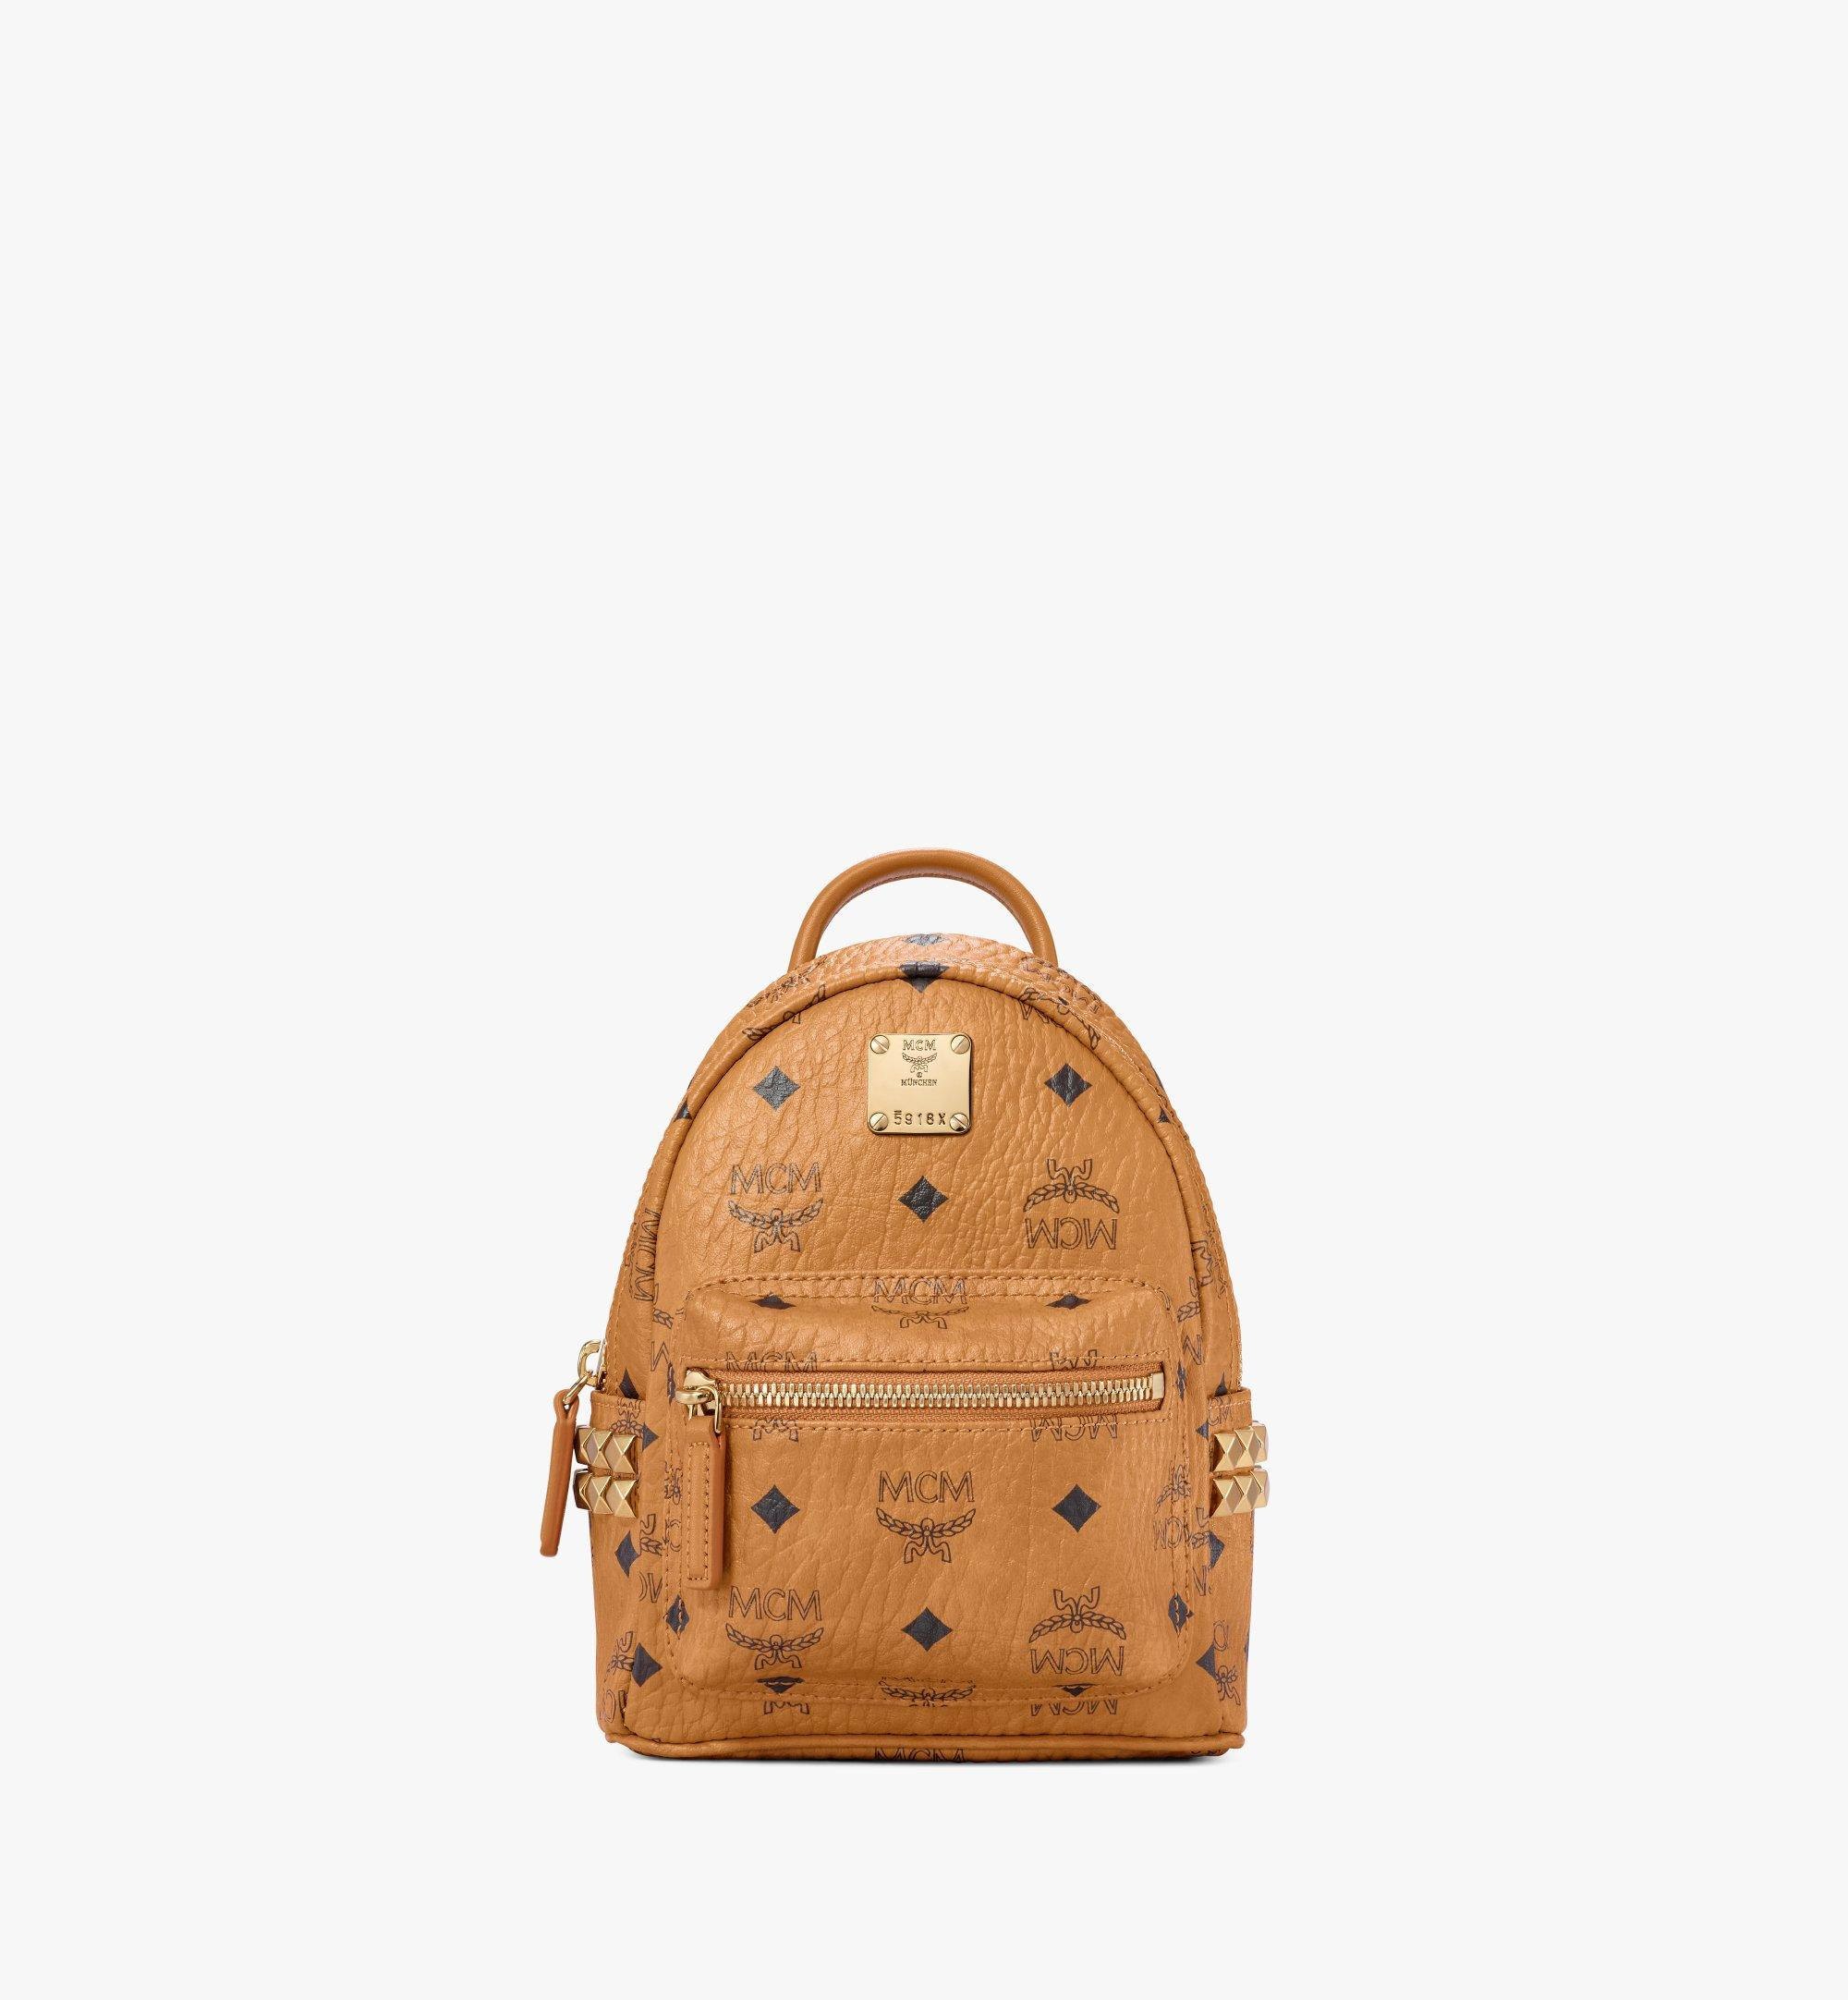 20 cm 8 in Stark Side Studs Bebe Boo Backpack in Visetos